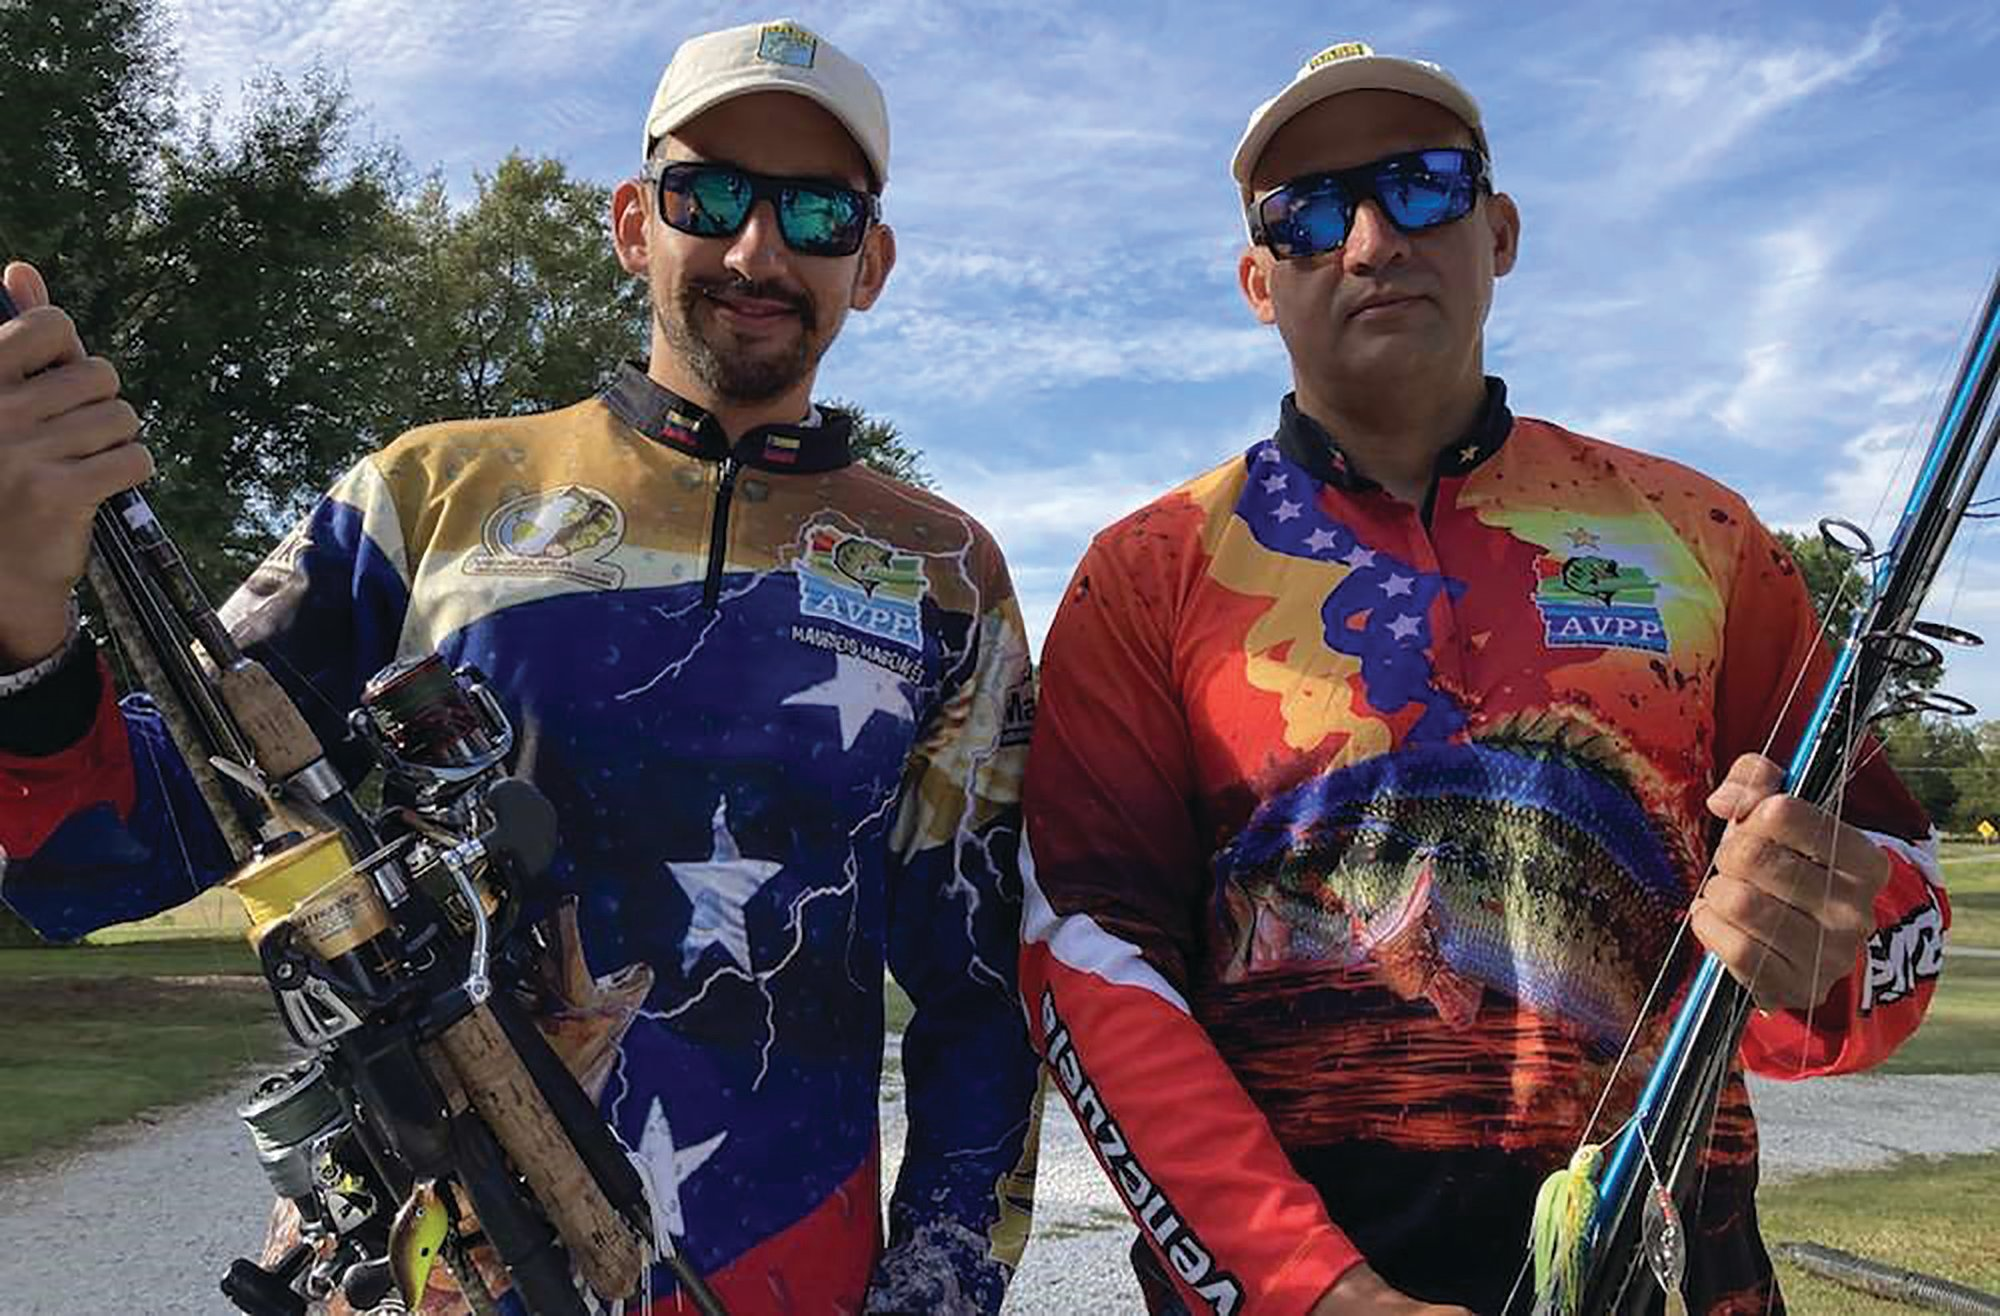 PHOTO PROVIDED BY B.A.S.S. Venezuelan anglers Daniel Vaidis and Mauricio Marciales were visiting family in Florida when their country closed for re-entry due to COVID-19. The anglers used this opportunity to fulfill a dream of competing in this week's Basspro.com Bassmaster Eastern Open at Lake Hartwell.